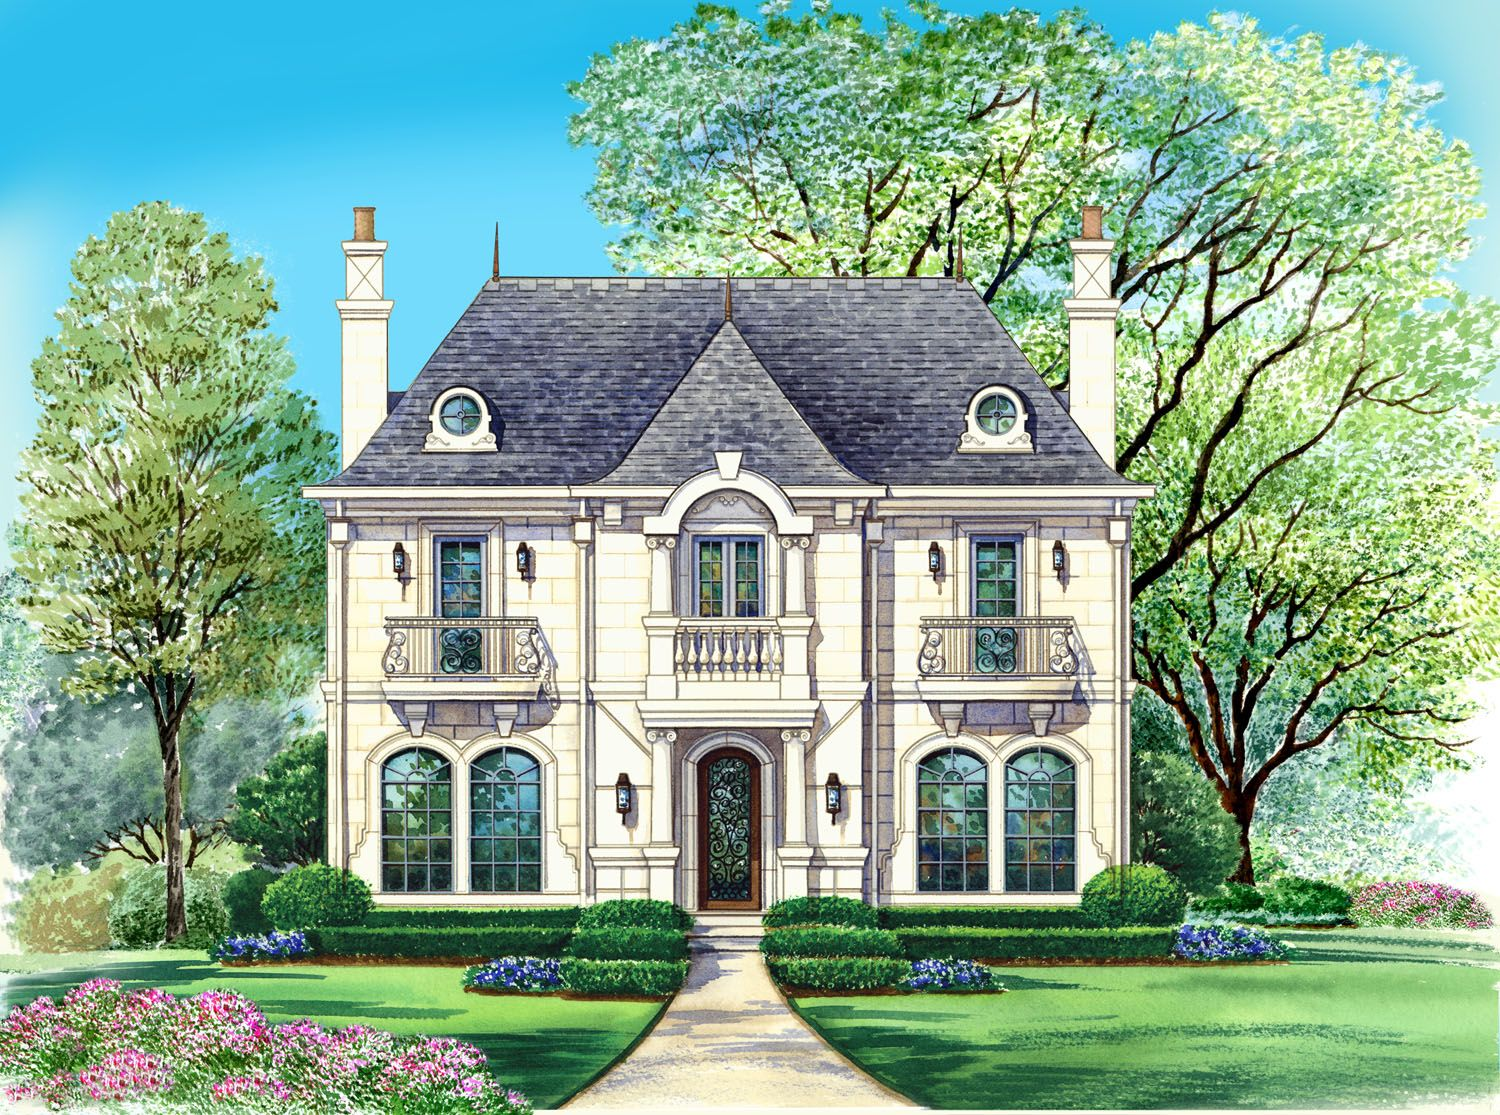 French country style home plan home design and style Parisian style home